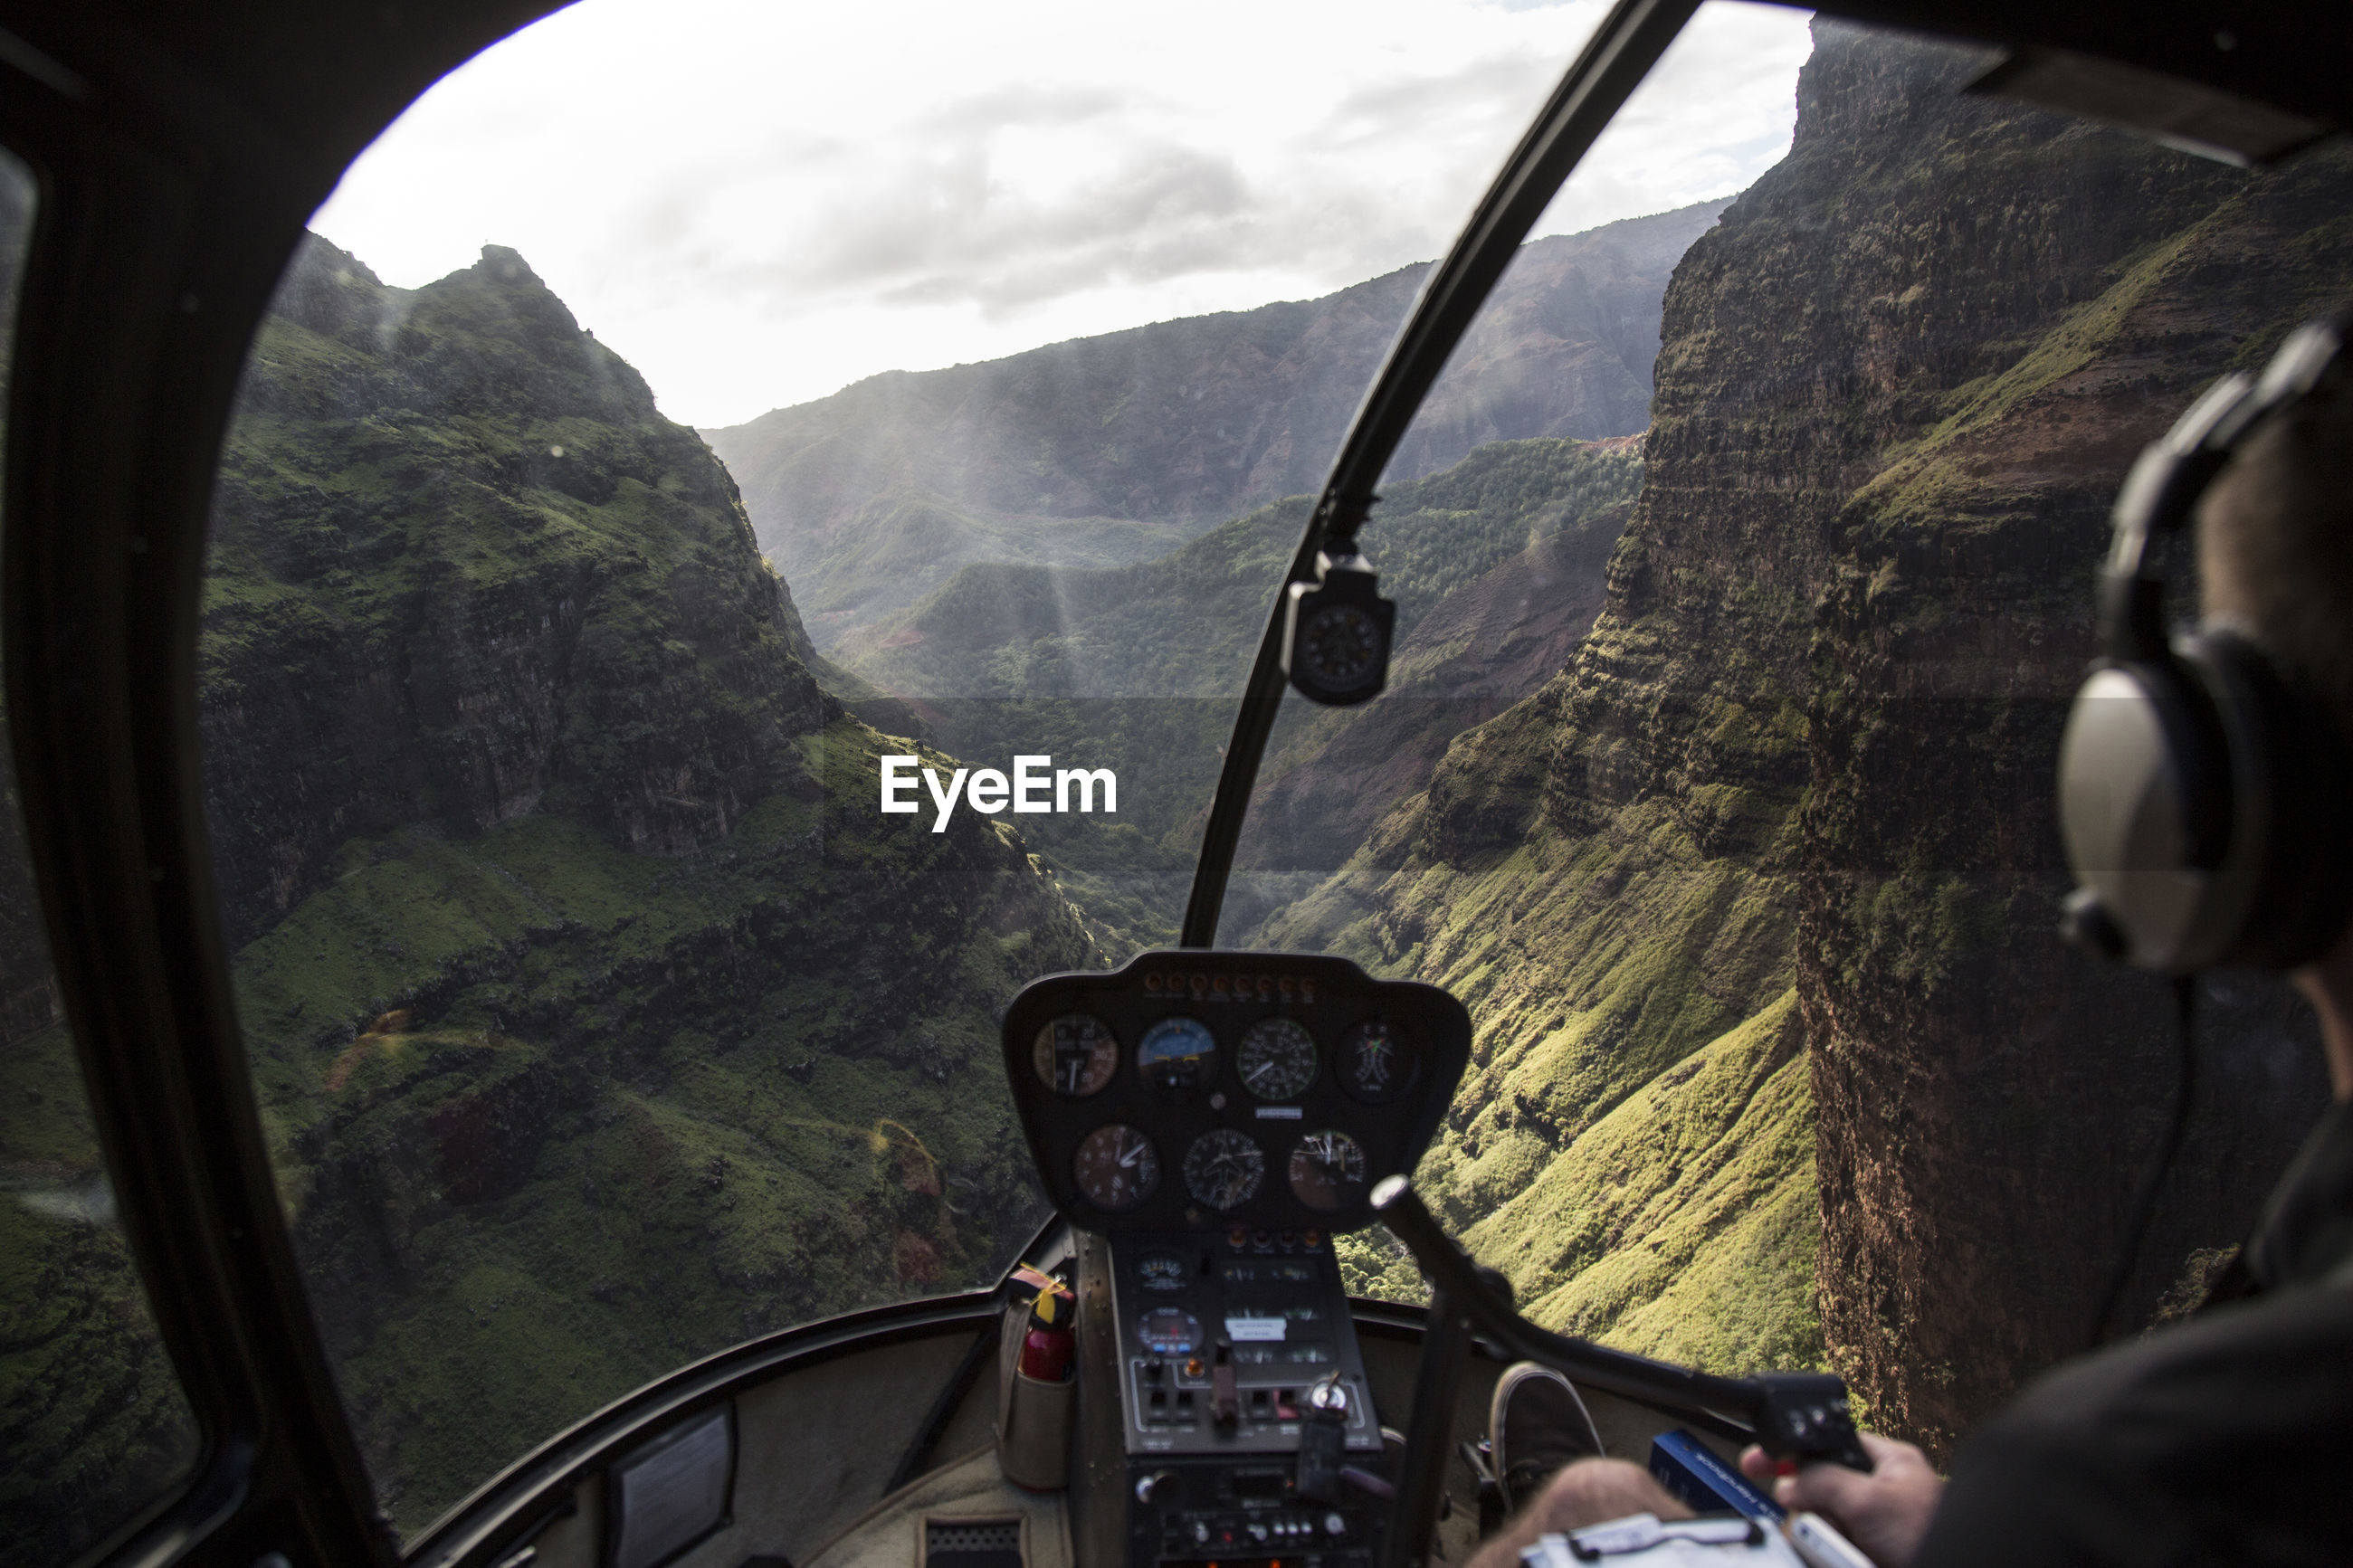 vehicle interior, transportation, mountain, mode of transport, day, windshield, cockpit, landscape, helicopter, one person, real people, window, air vehicle, sky, steering wheel, mountain range, tree, flying, indoors, nature, pilot, close-up, people